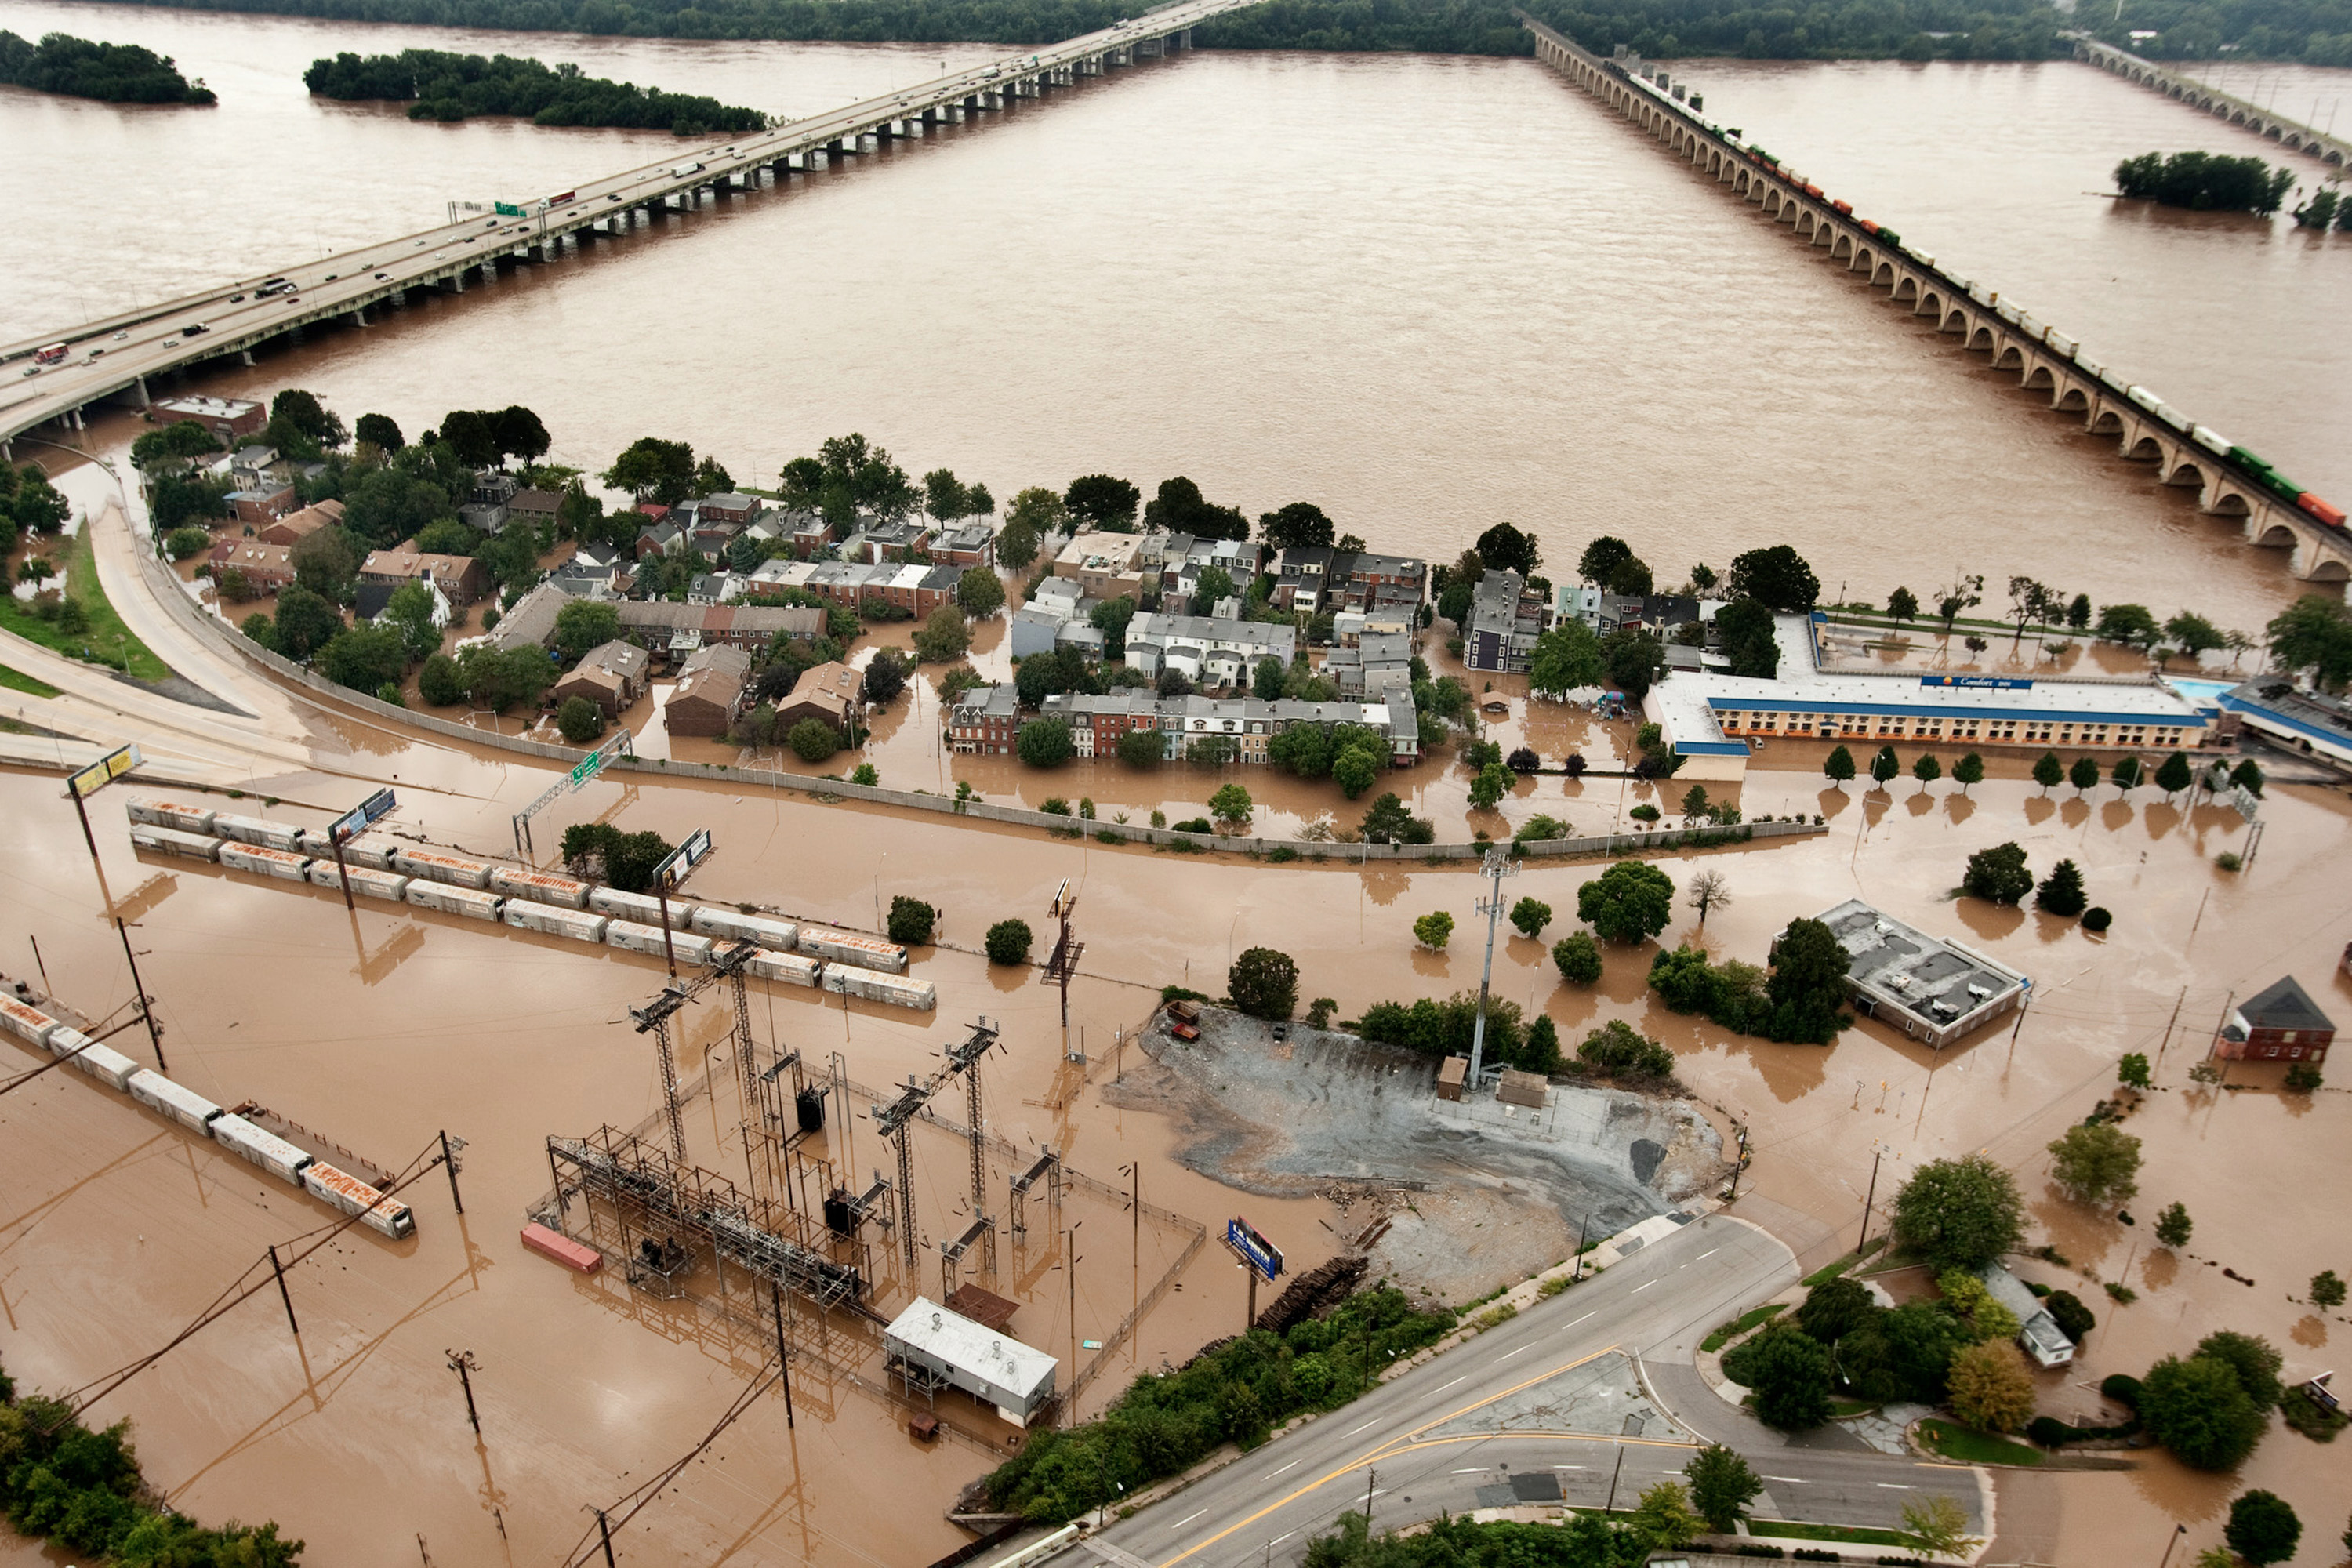 Central Pa.'s 100-year flood - Tropical Storm Lee in 2011